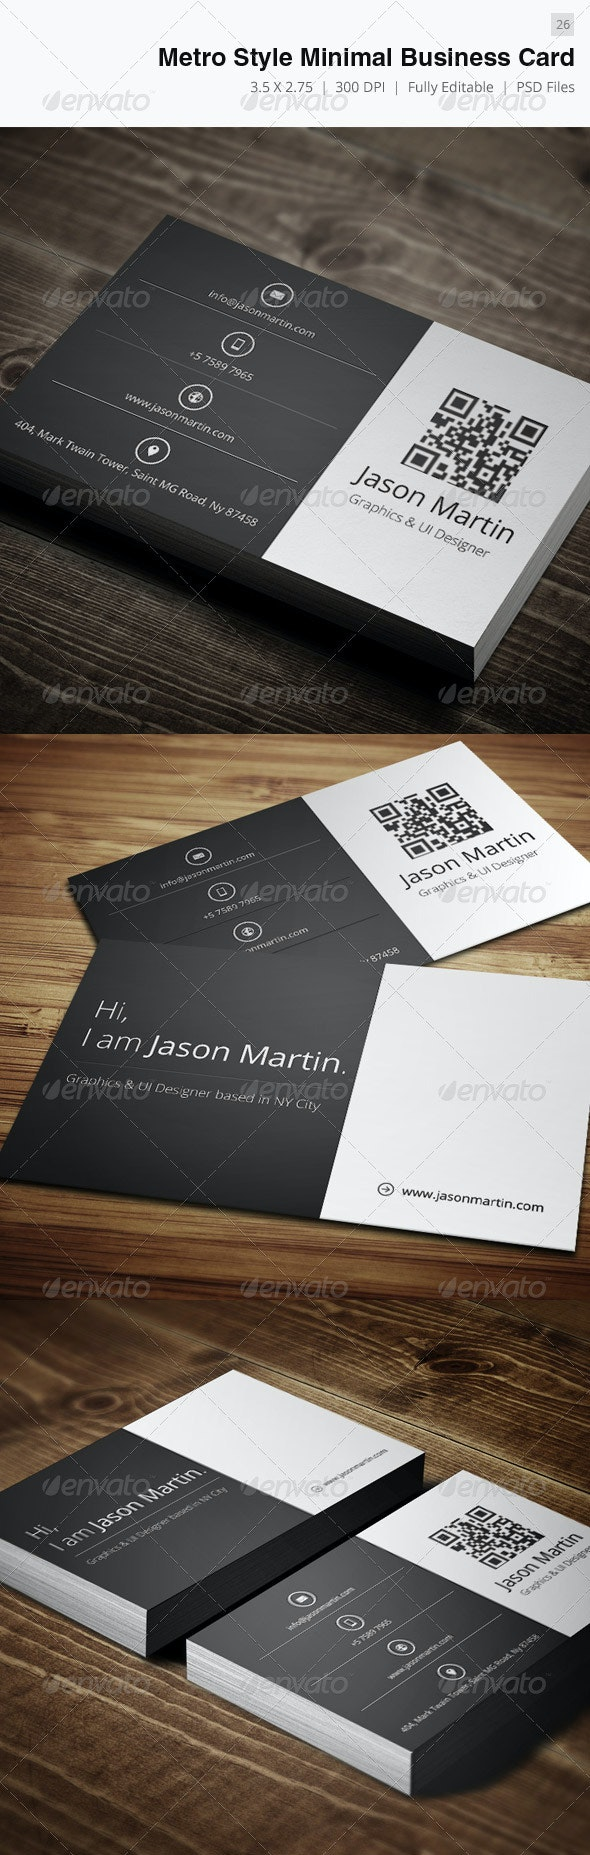 Minimal Creative Business Card - 26 - Creative Business Cards